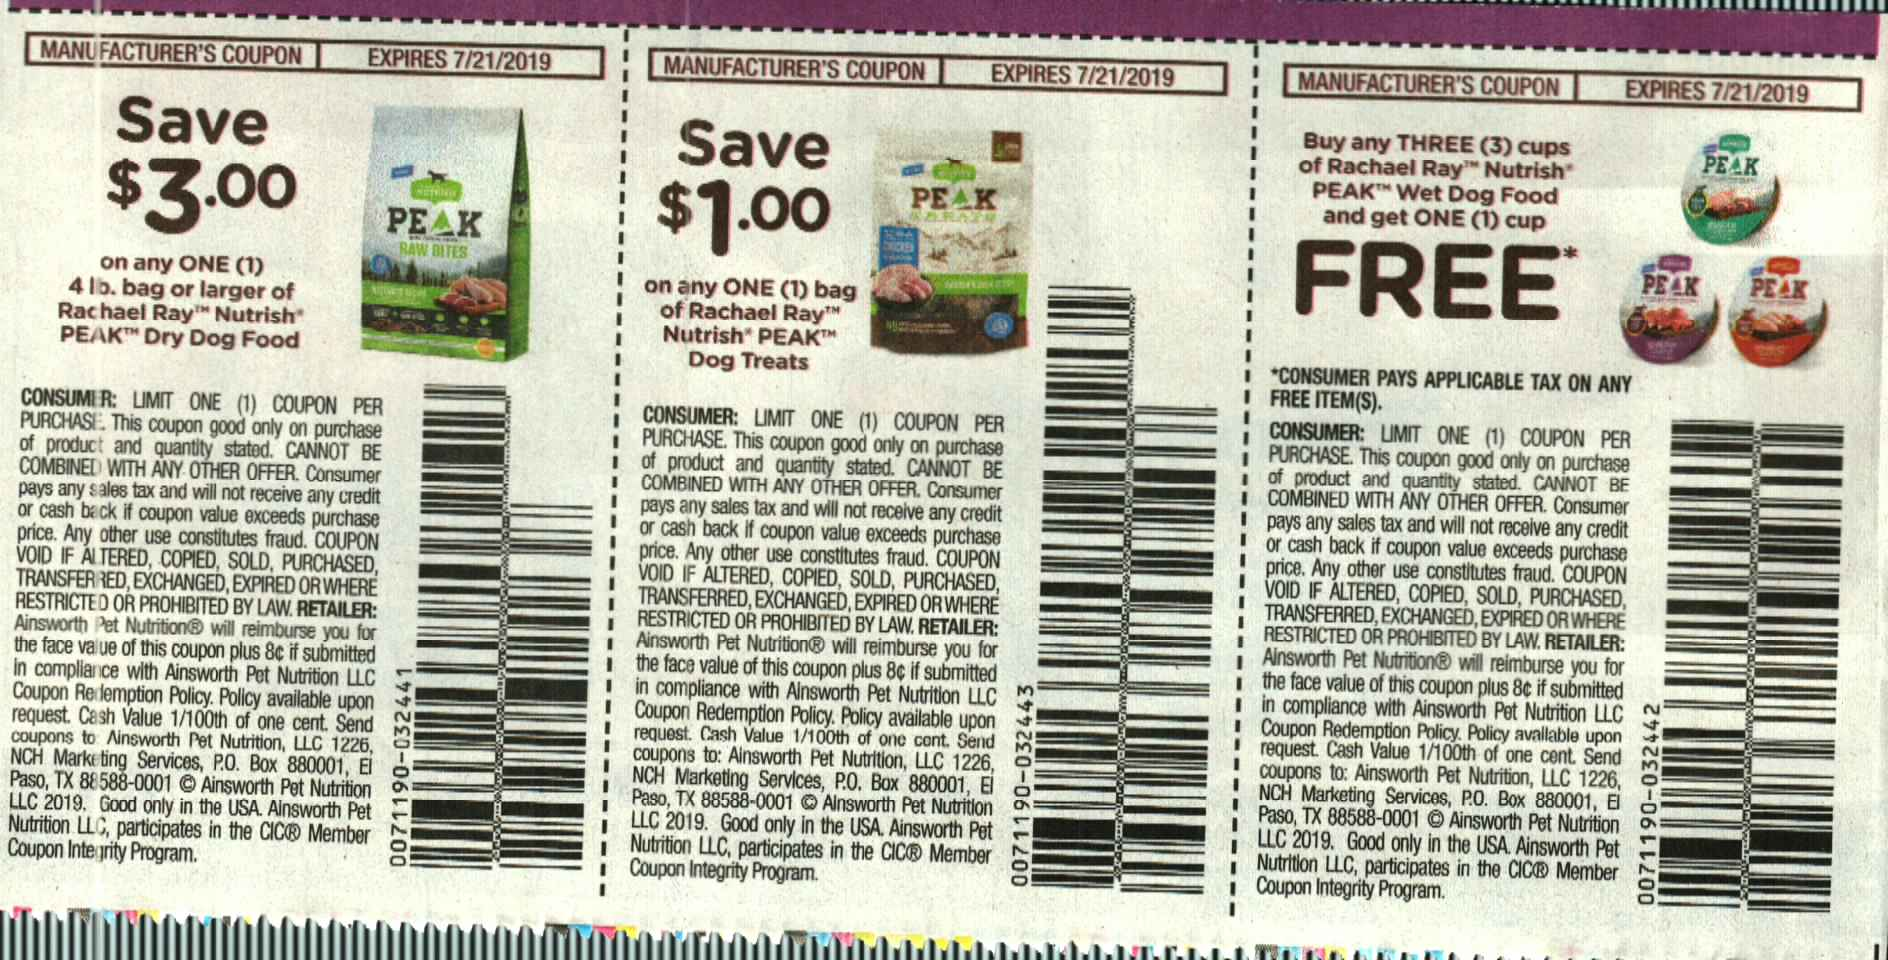 $3/1 Rachael Ray Nutrish Peak Dry Dog Food + $1/1 Peak Dog Treats + Buy 3 Get 1 Free Peak Wet Food Cups 7/21/2019